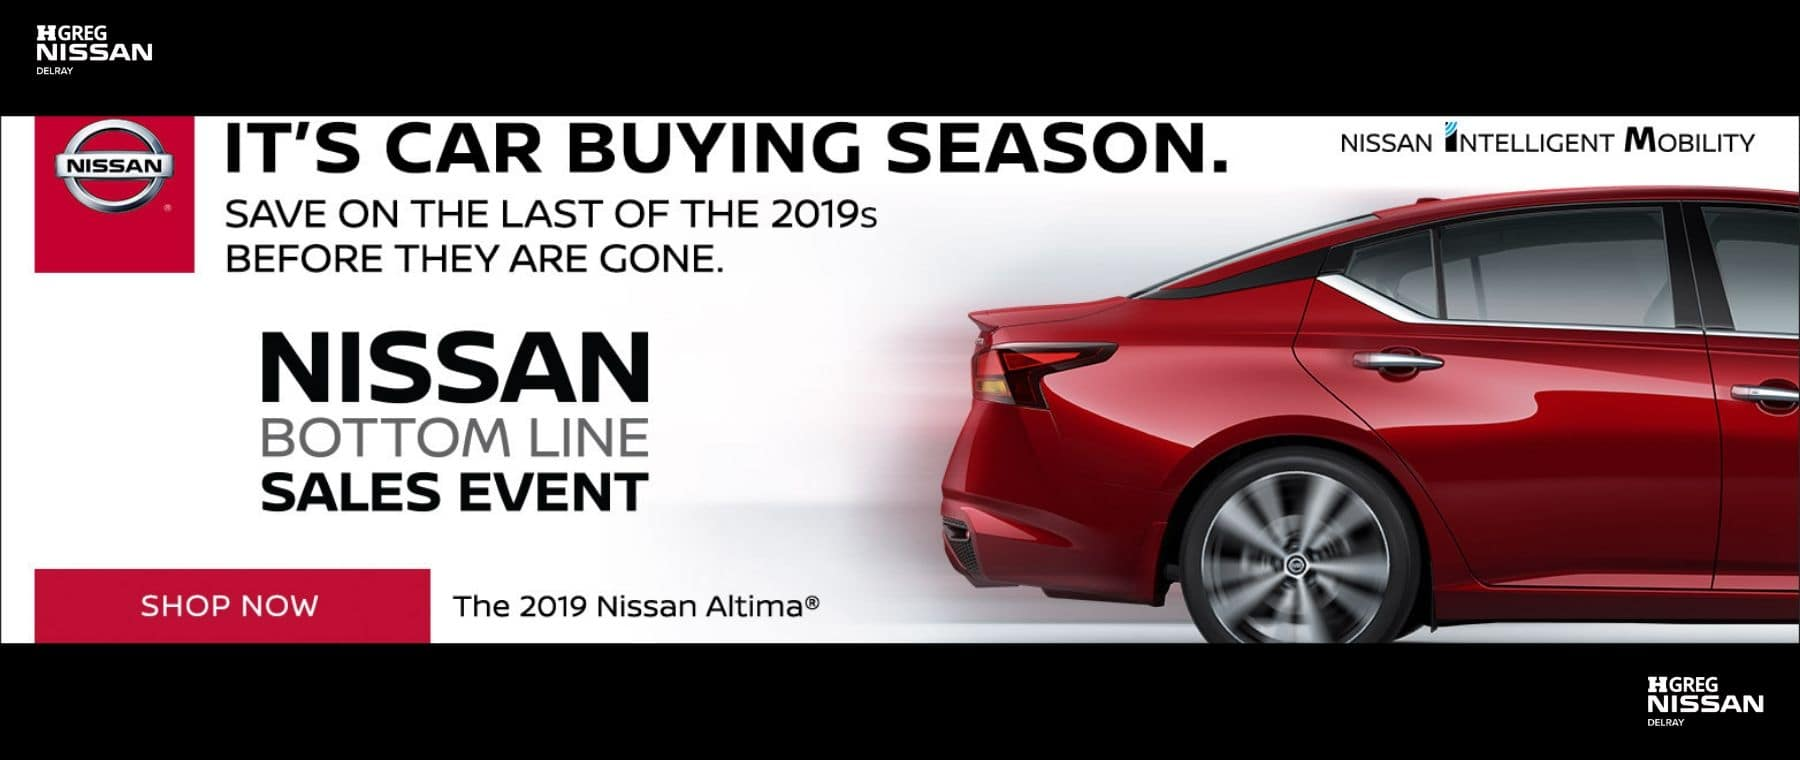 New And Used Nissan Vehicles For Sale Delray Fl Hgreg Nissan Delray